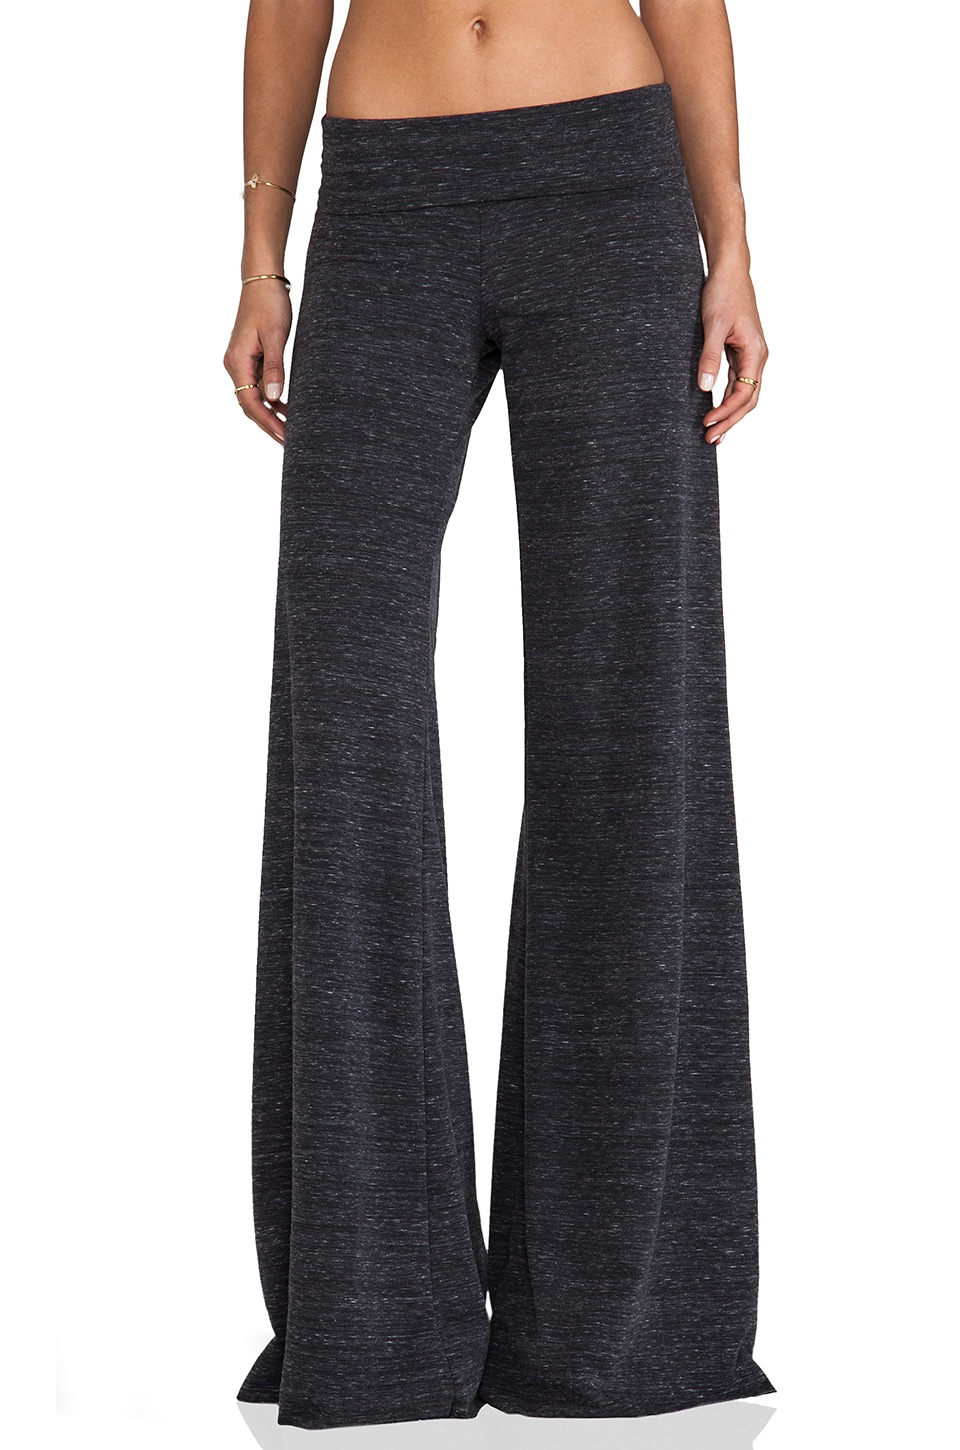 Saint Grace Stripe Carol Pant in Marble Black